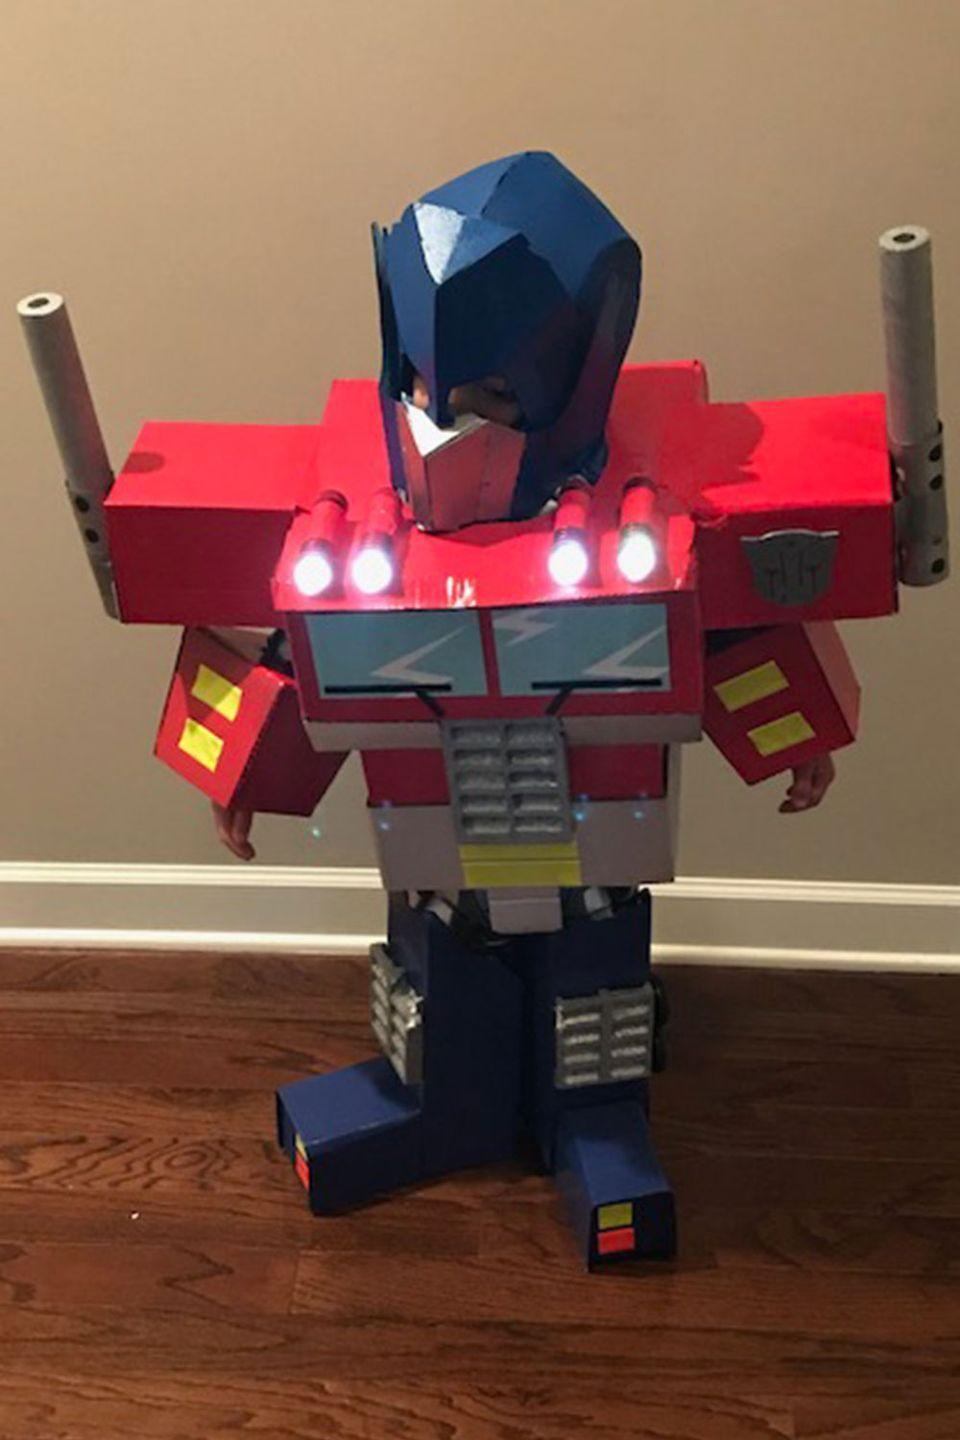 "<p>A little boy disguised as a robot disguised as a truck ... with working lights became the ultimate Transformer. </p><p><strong>RELATED: </strong><a href=""https://www.goodhousekeeping.com/holidays/halloween-ideas/g385/popular-kids-halloween-costumes/"" rel=""nofollow noopener"" target=""_blank"" data-ylk=""slk:65 Kids' Halloween Costume Ideas for Easy, Creative, and Unique Trick-or-Treating"" class=""link rapid-noclick-resp"">65 Kids' Halloween Costume Ideas for Easy, Creative, and Unique Trick-or-Treating</a></p>"